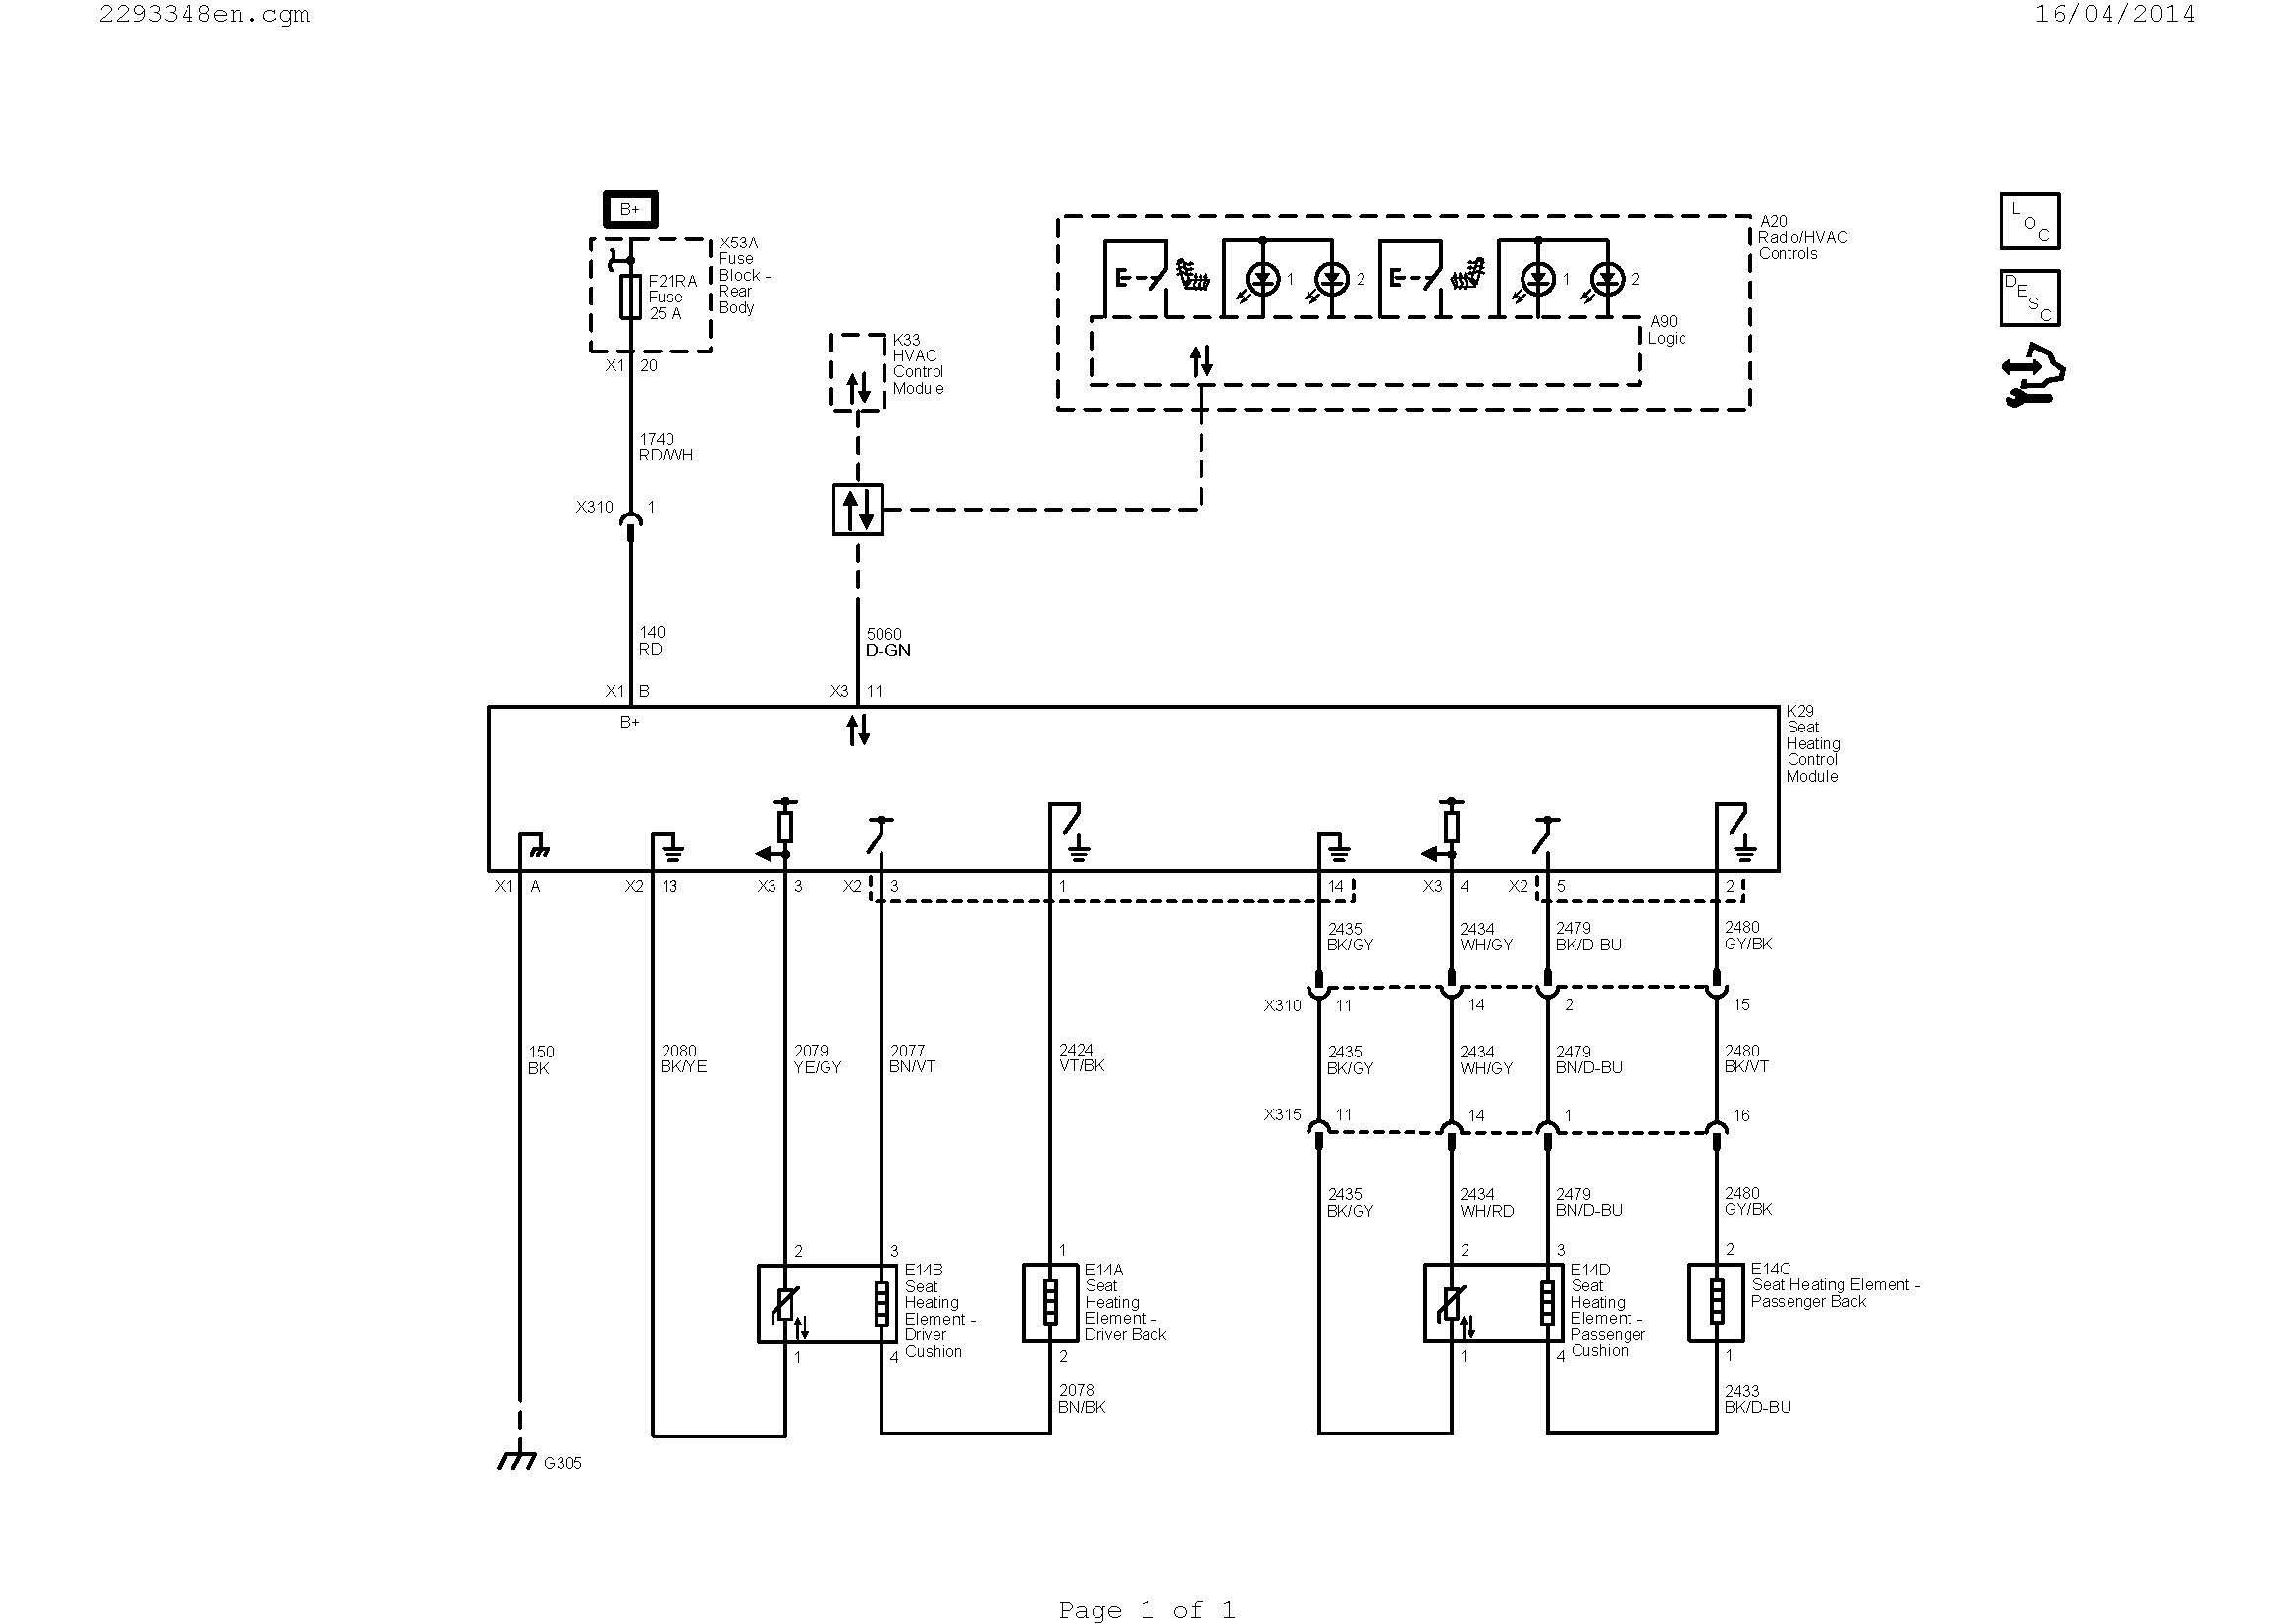 pittsburgh electric hoist wiring diagram Download-hvac wiring diagram Collection Wiring A Ac Thermostat Diagram New Wiring Diagram Ac Valid Hvac DOWNLOAD Wiring Diagram 8-l